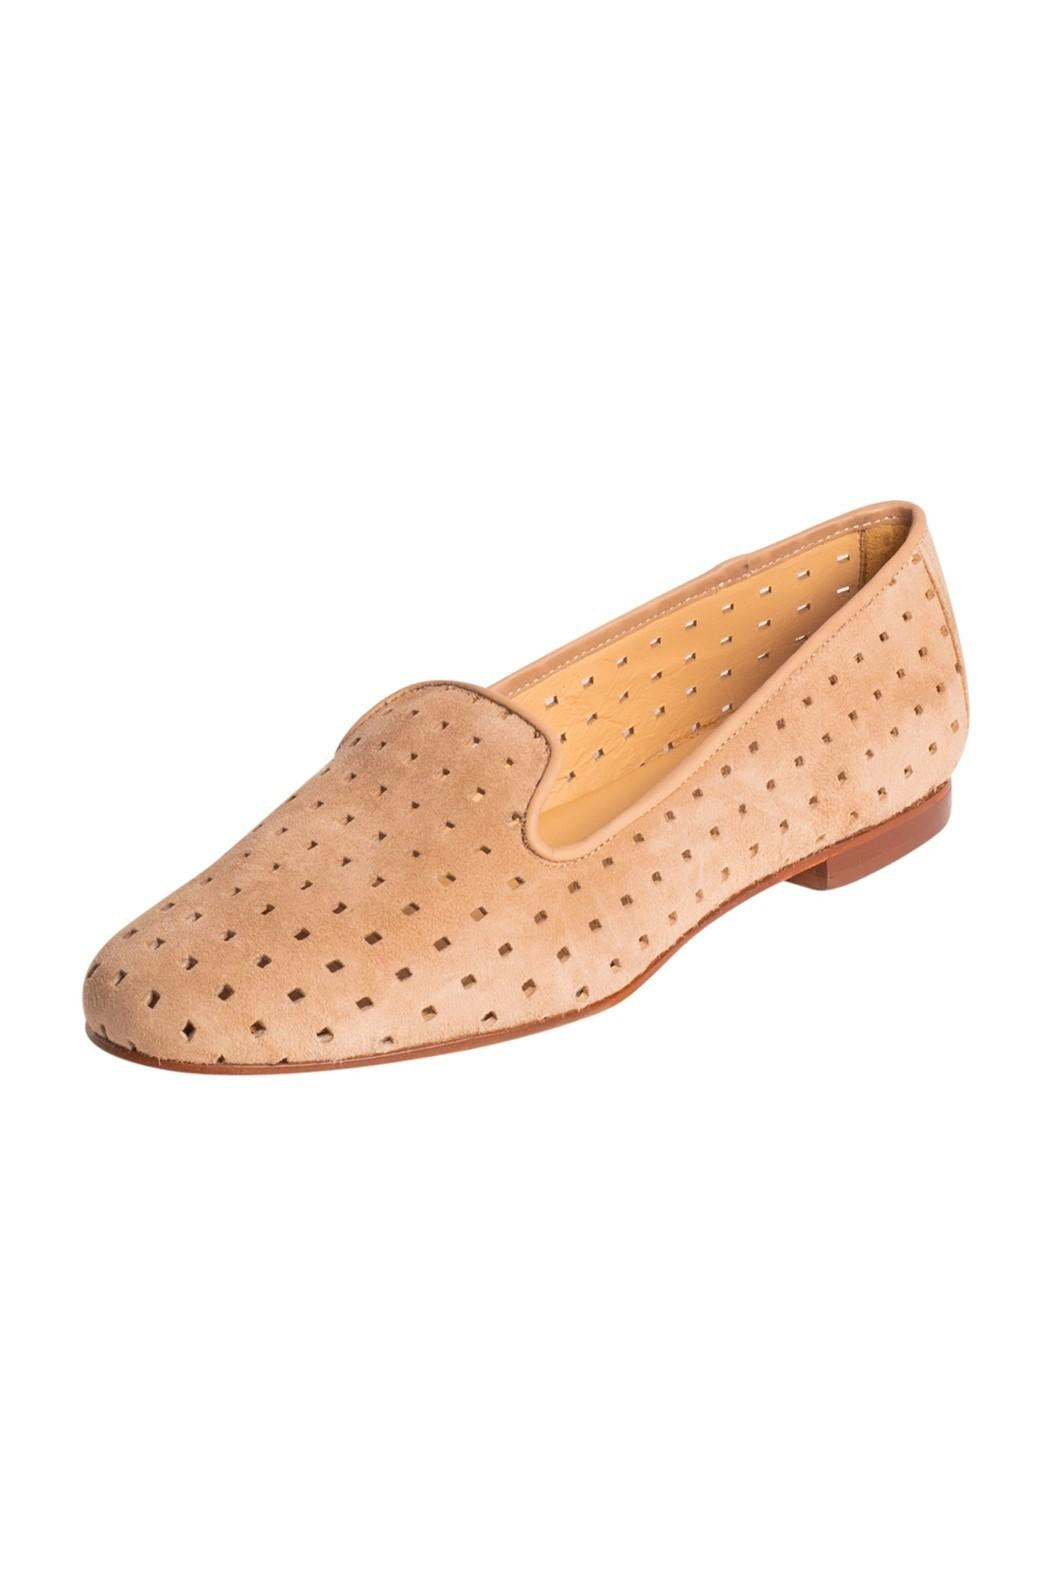 Pascucci Suede Perforated Loafers - Front Full Image